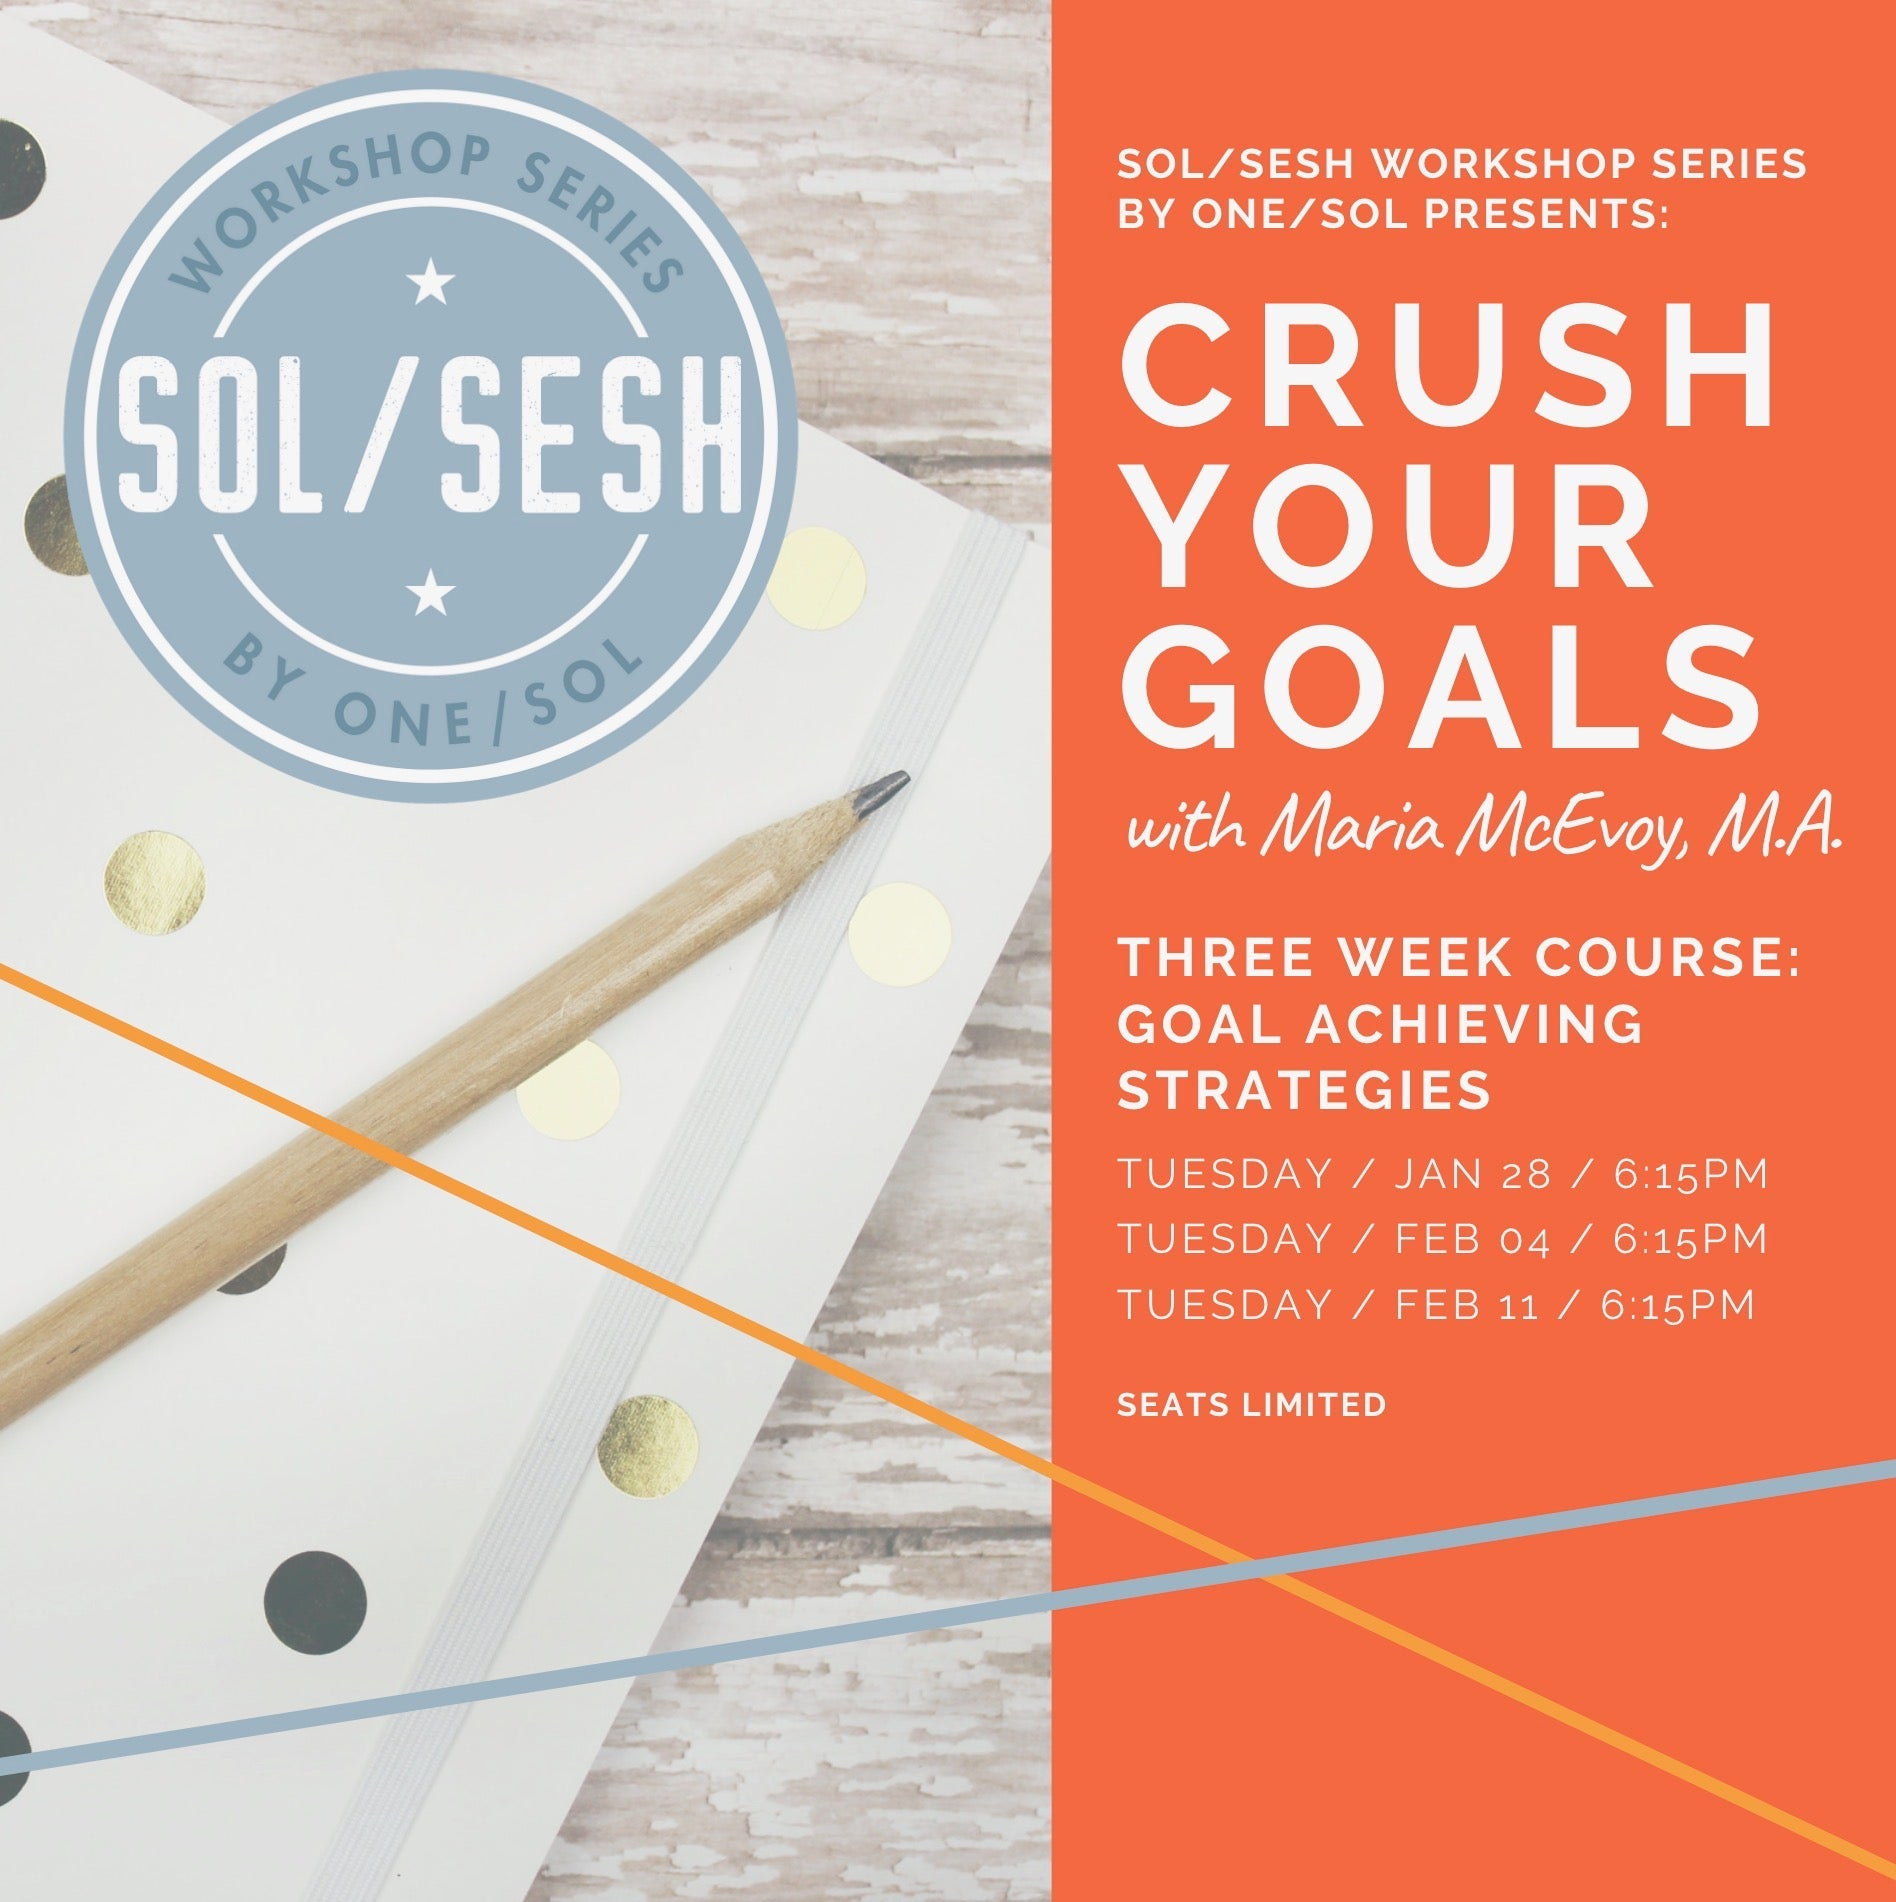 CRUSH YOUR GOALS with Maria McEvoy